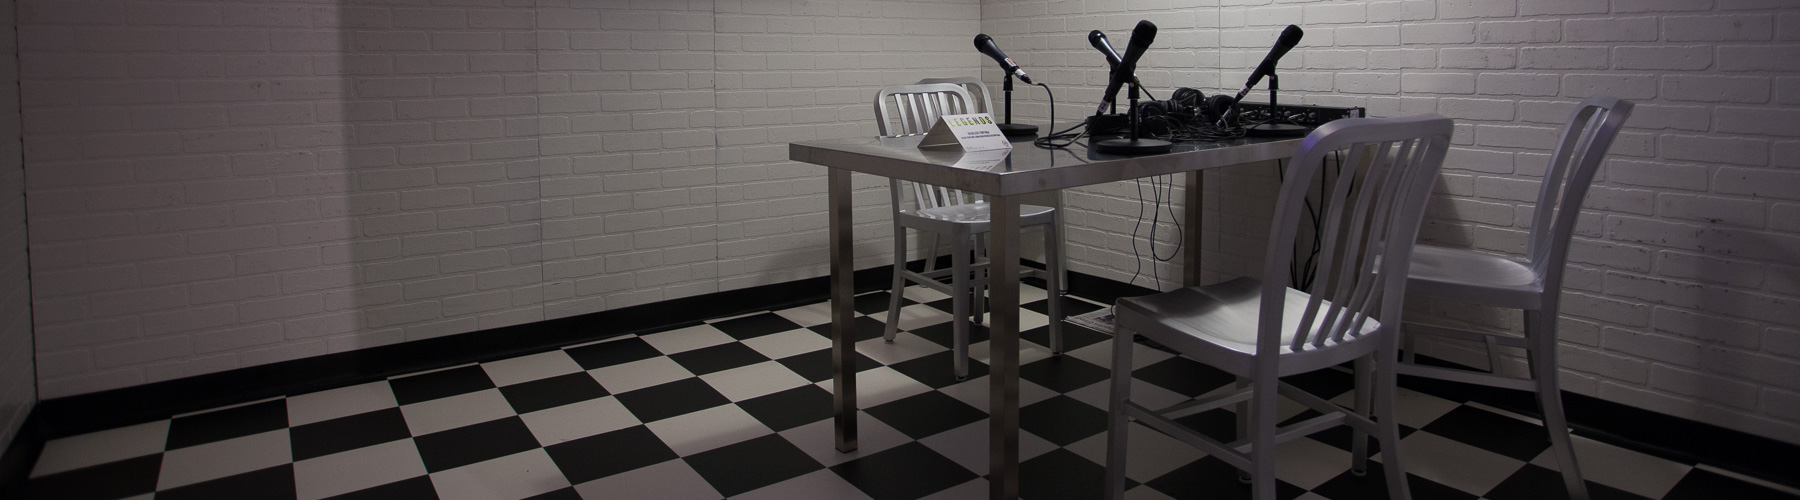 Custom set modeled after police interrogation rooms